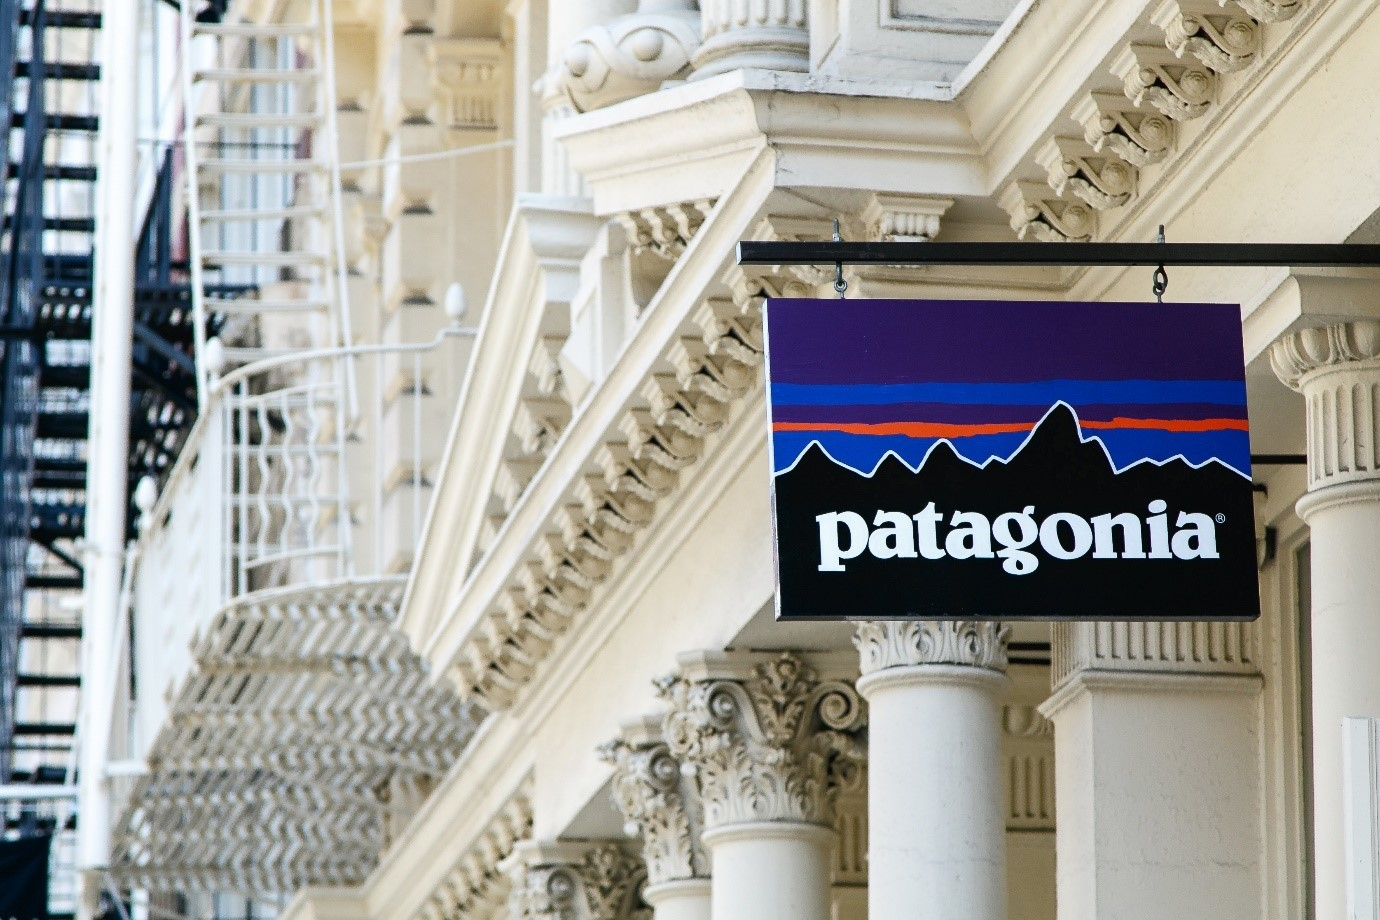 Patagonia store street sign